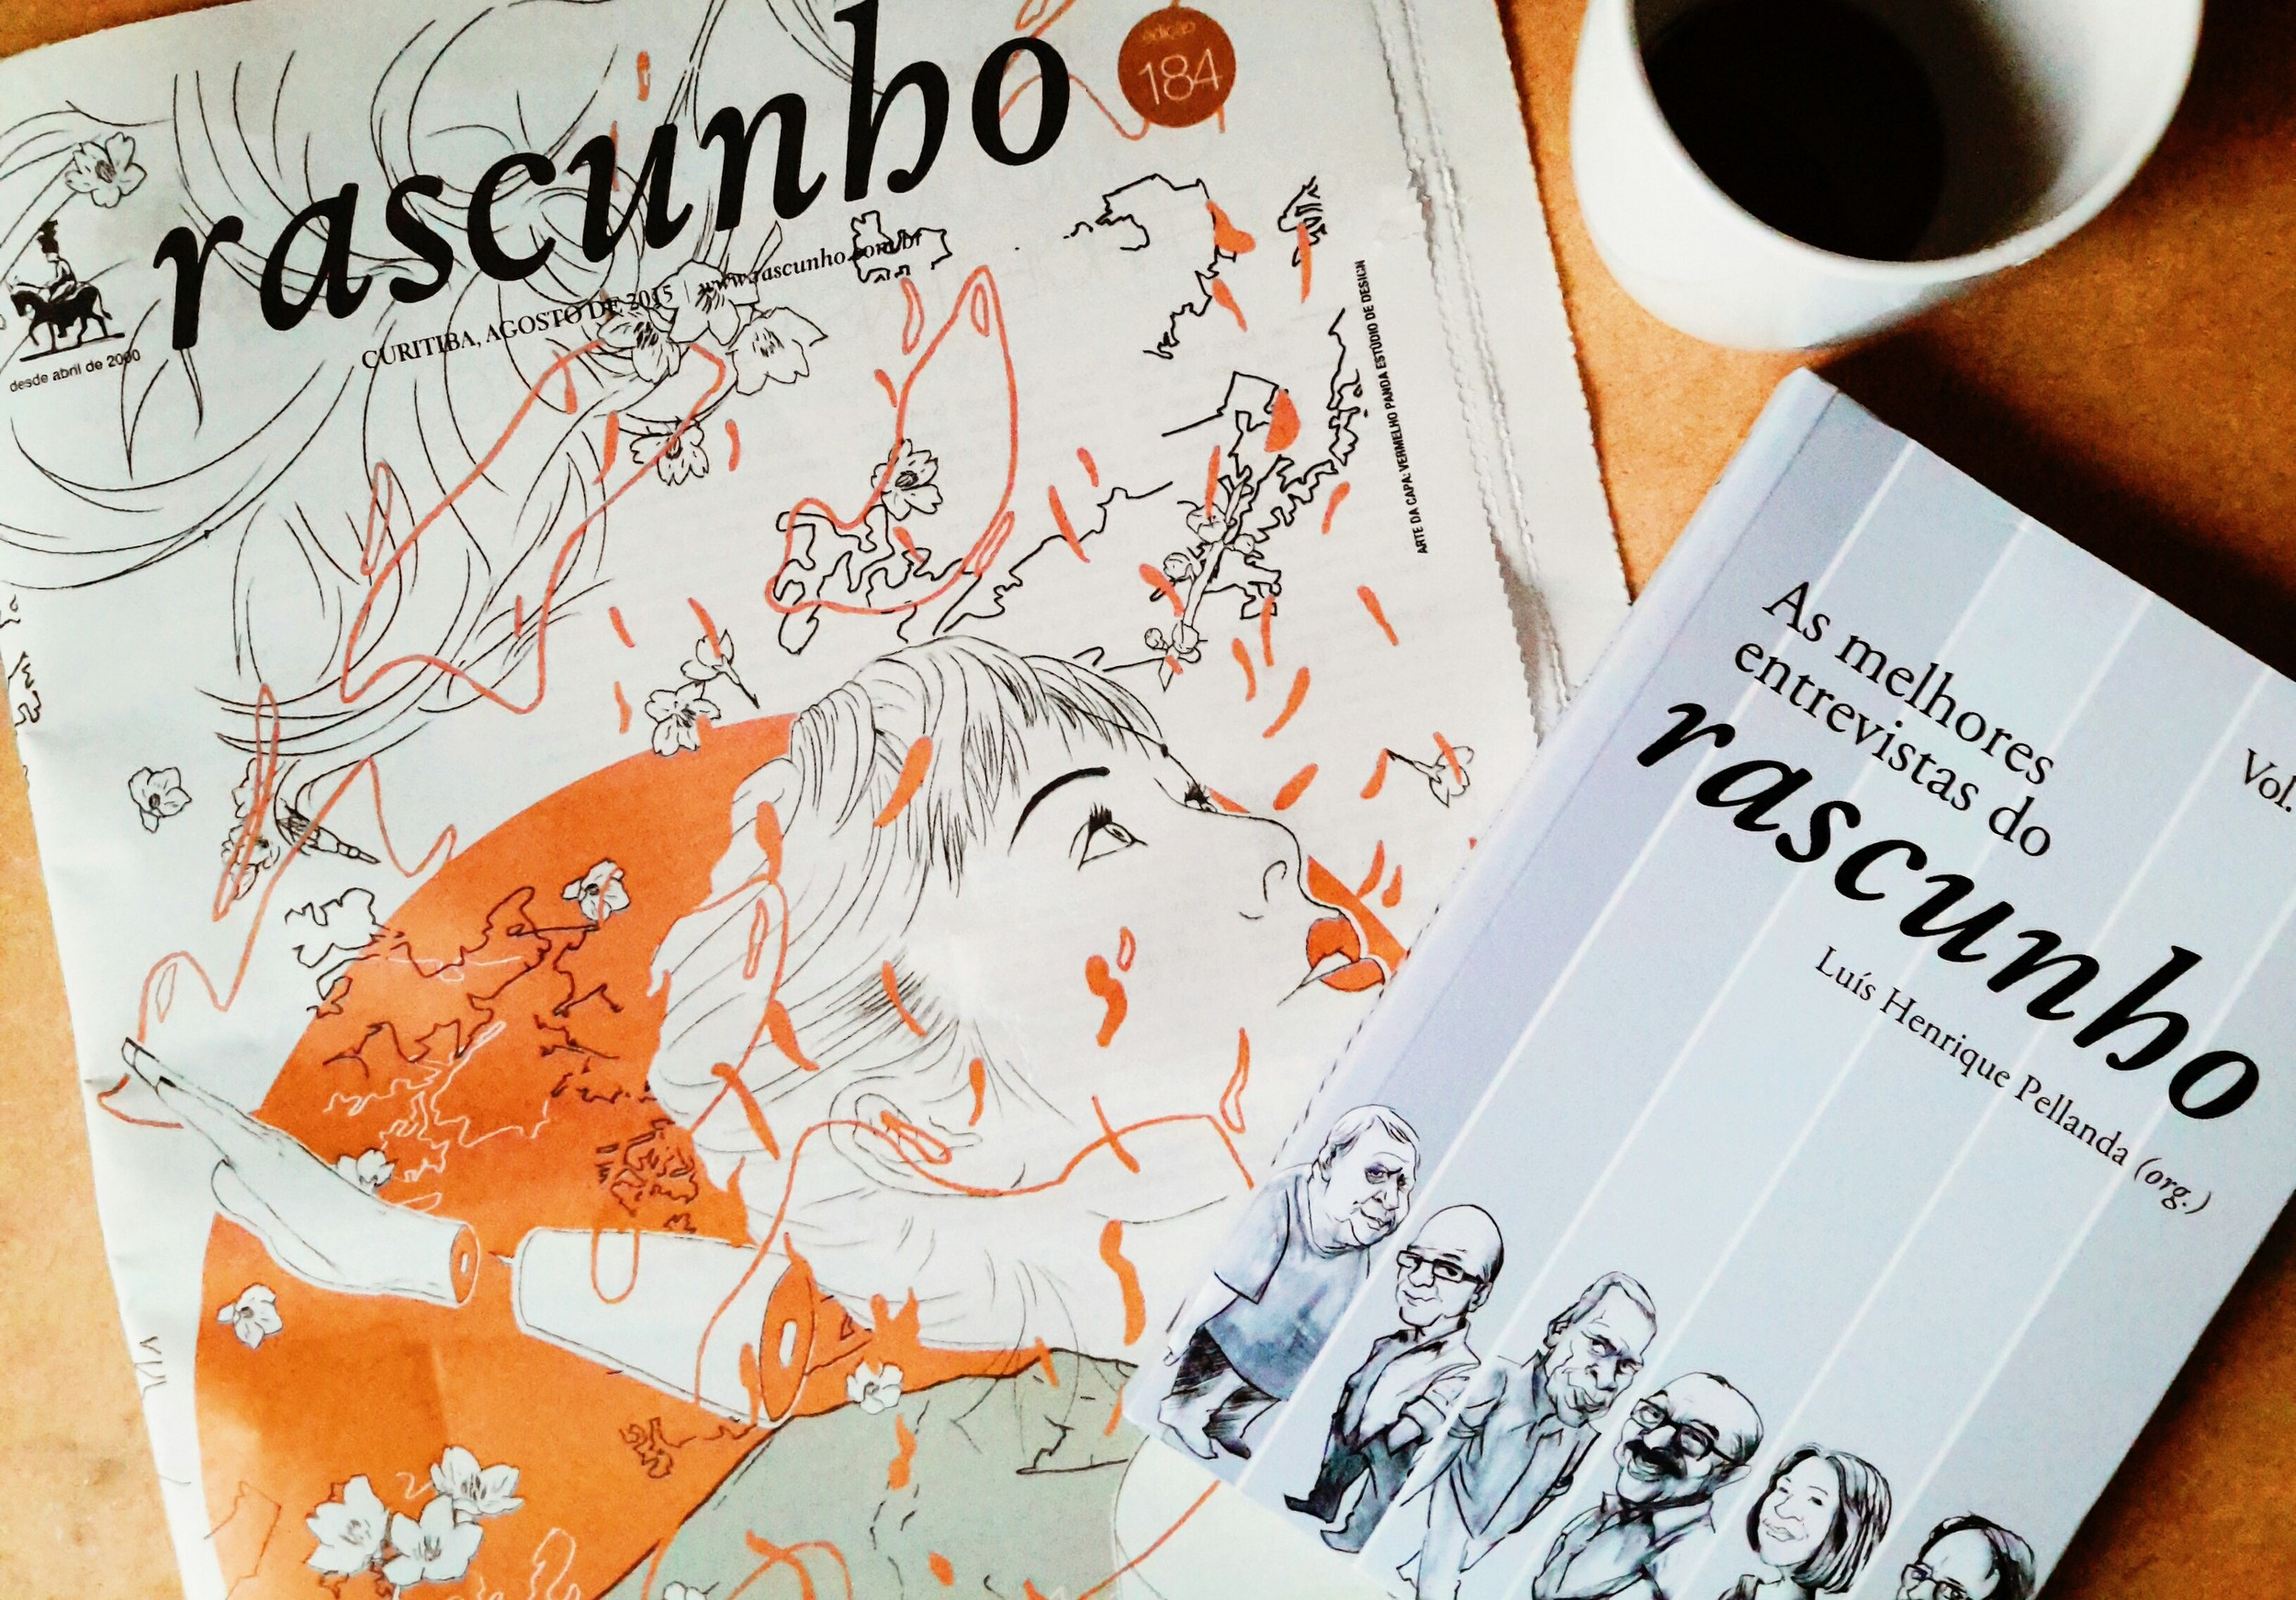 Rascunho literary newspaper and book